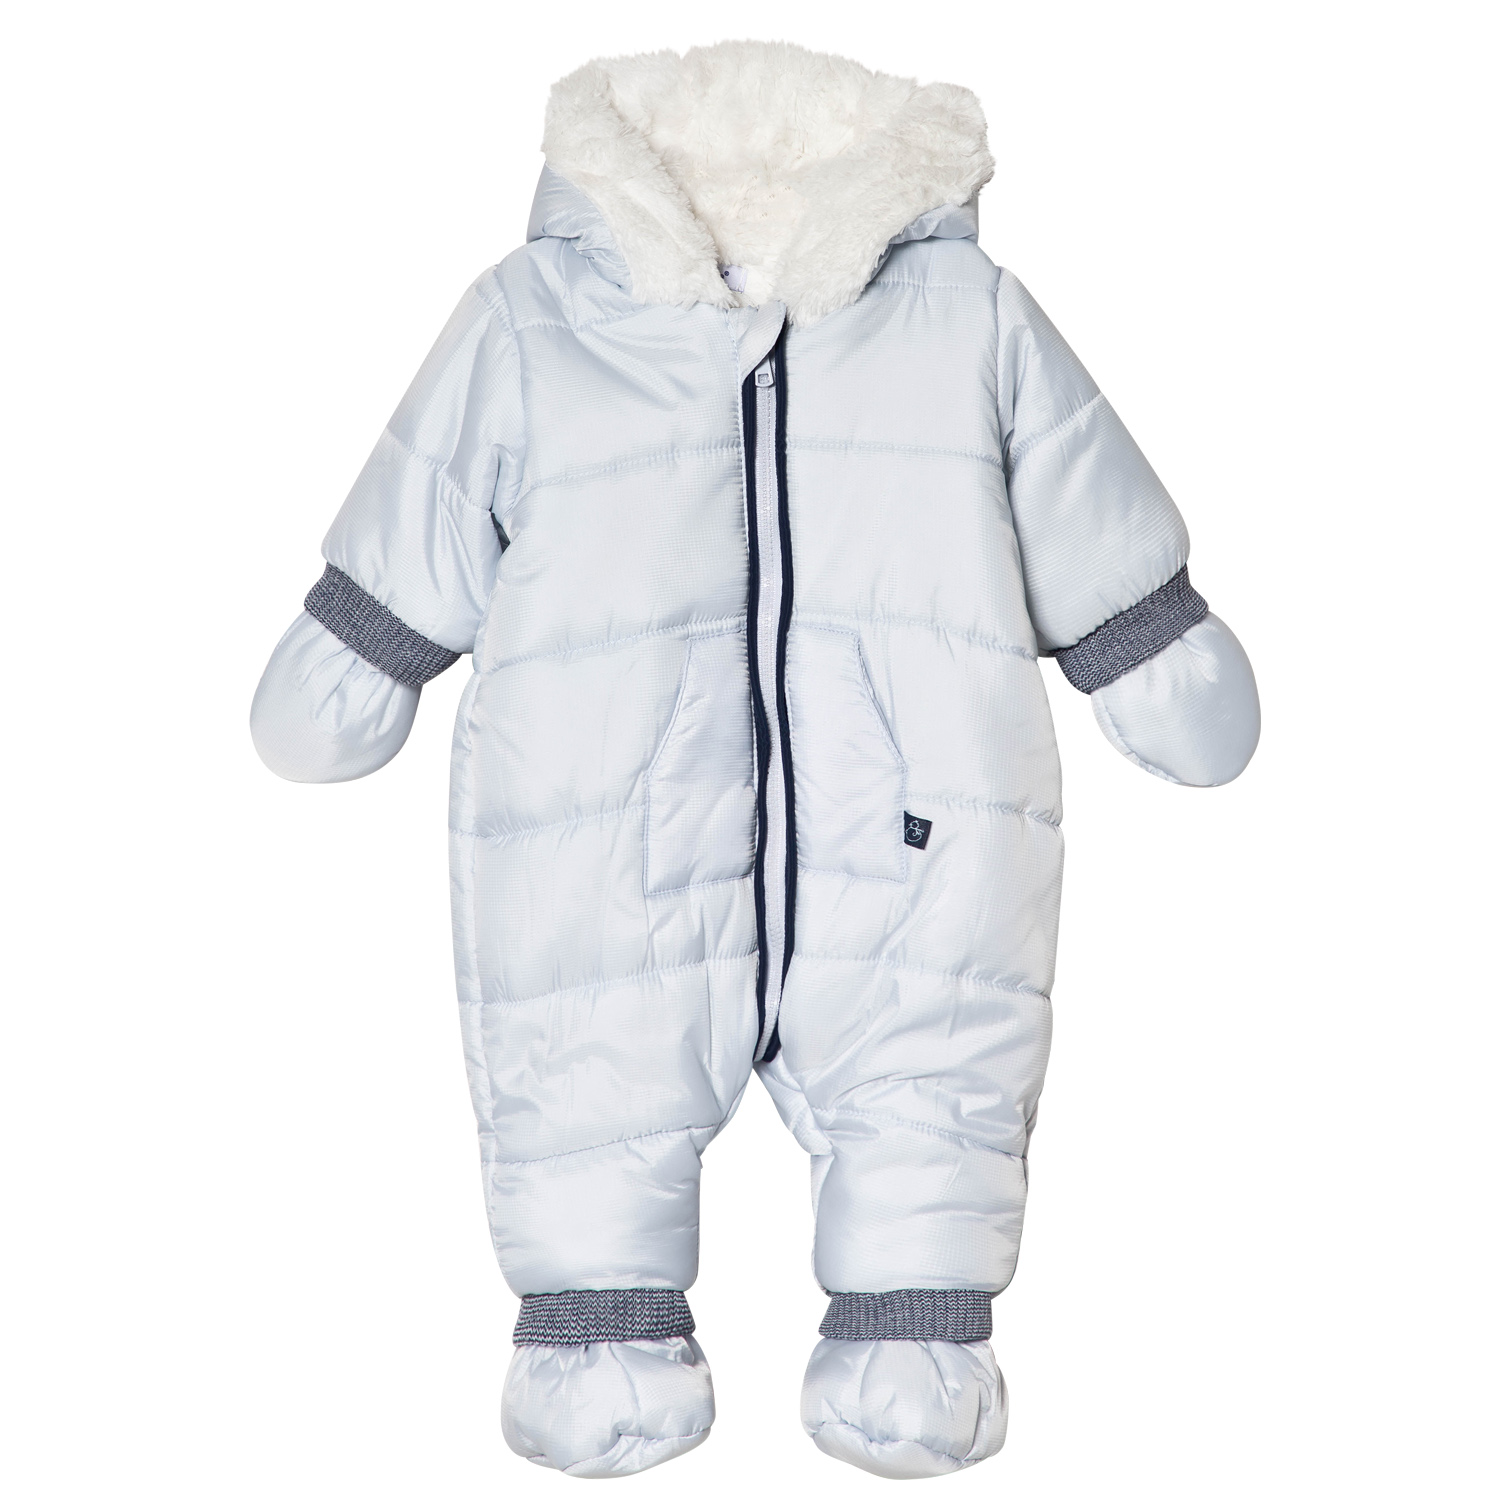 aba88726dafb Absorba Pale Blue Faux Fur Lined Hooded Snowsuit with Booties and ...